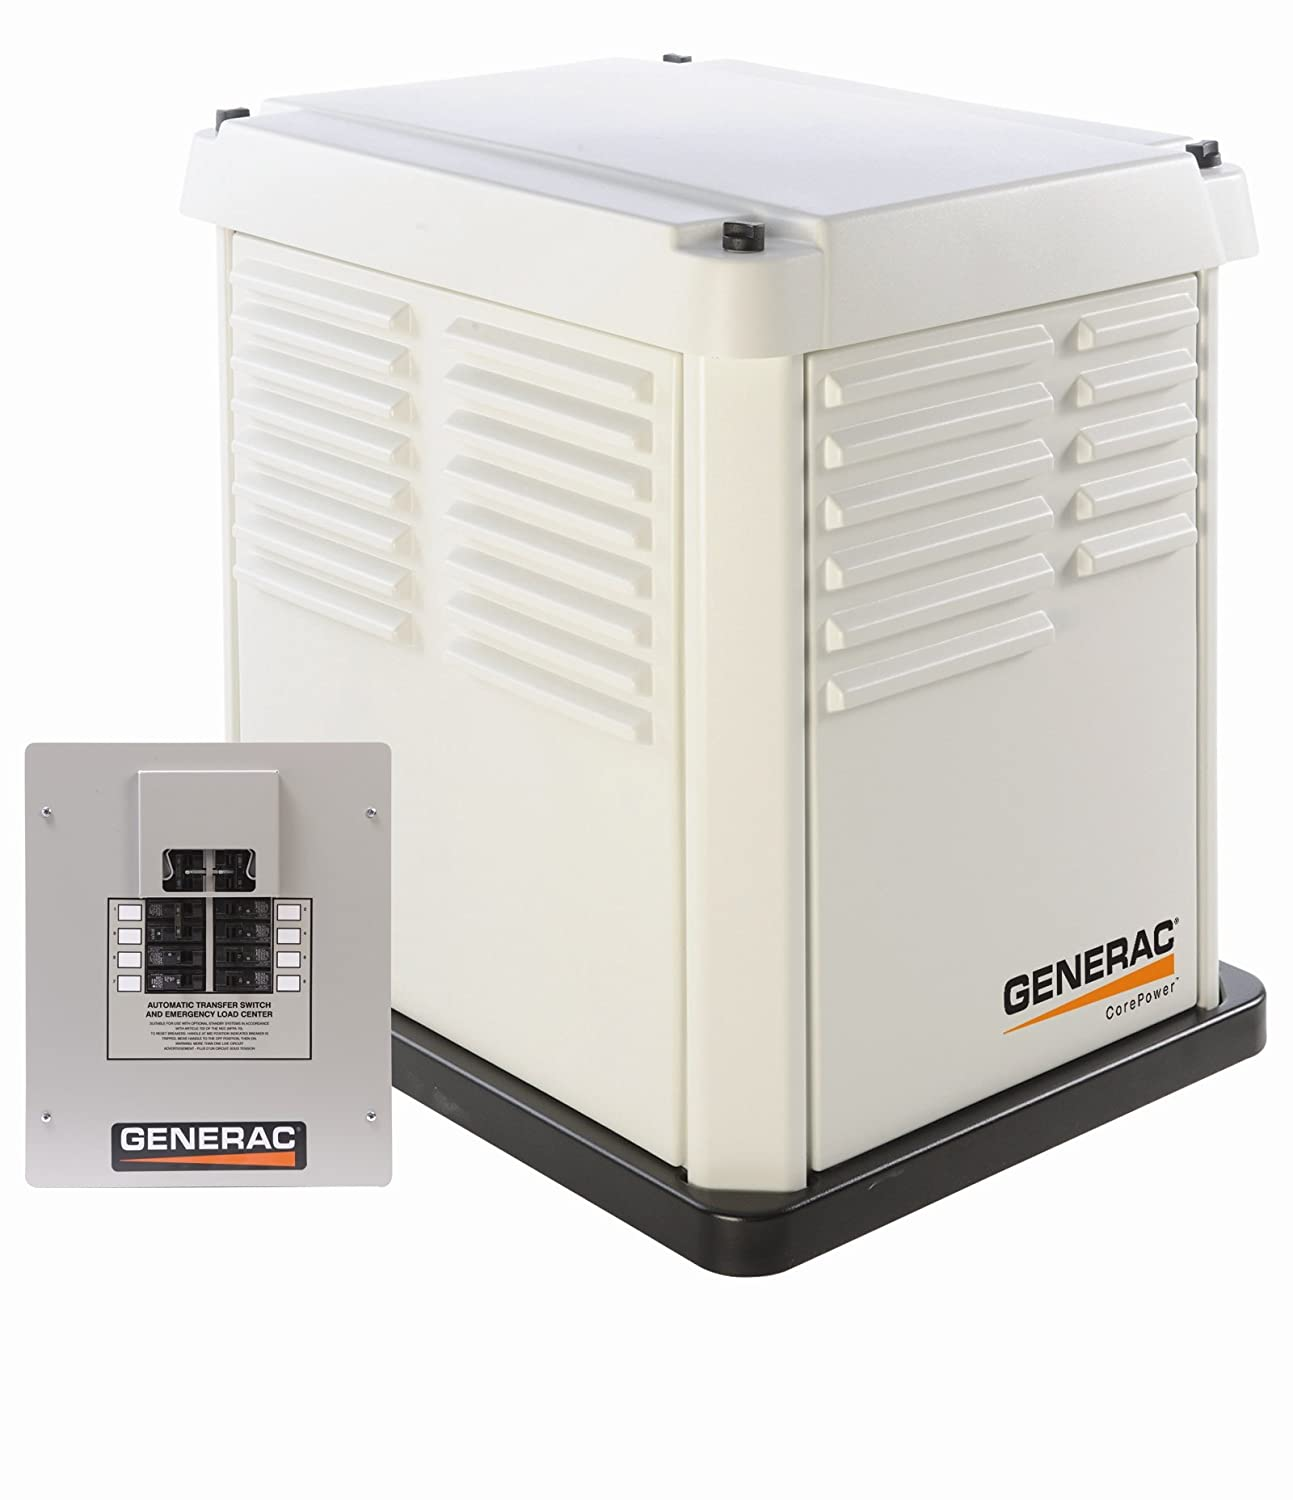 Generac CorePower Series 5837-7,000 Watt Standby Generator Review